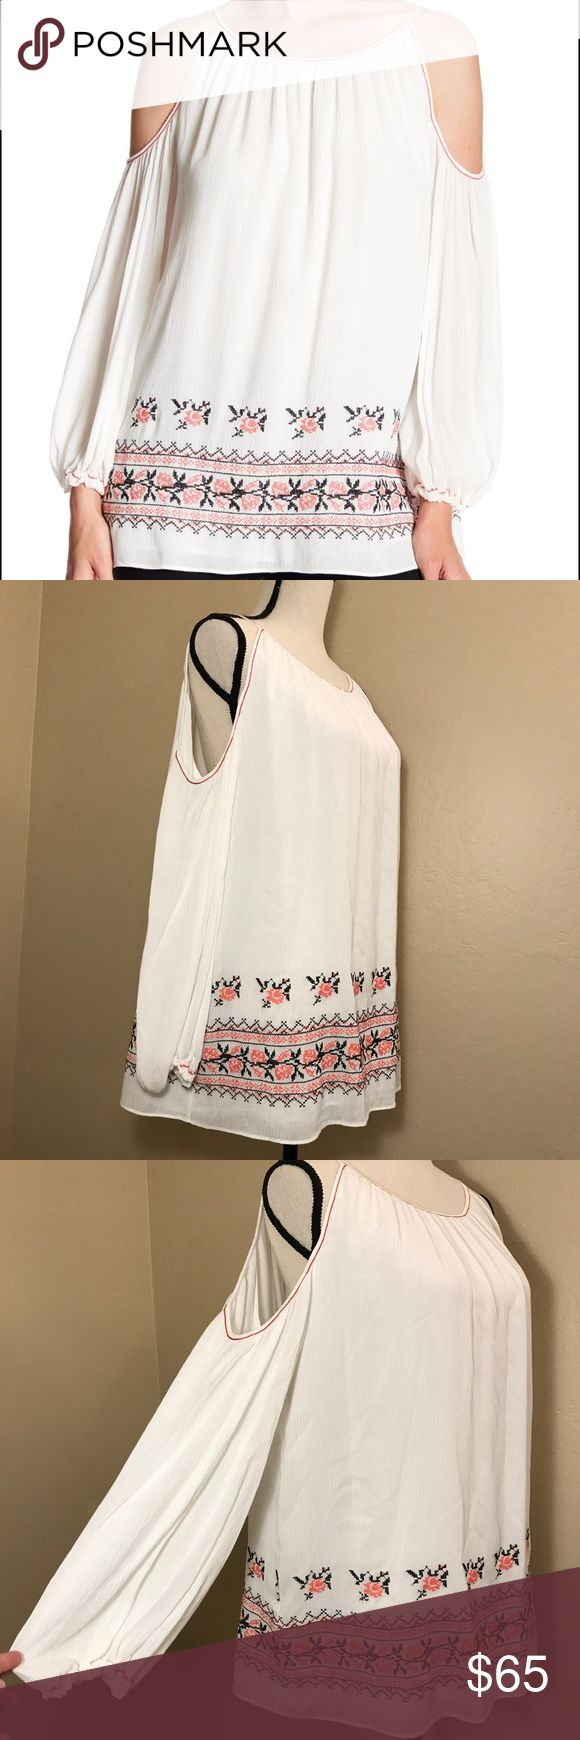 NWT Max Studio Cold Shoulder Peasant blouse New with Tags! Max Studio Cold Shoulder white Peasant Blouse with pink and blue Embroidered detail at bottom, tied back detail, and pink stitching. Max Studio Tops Blouses